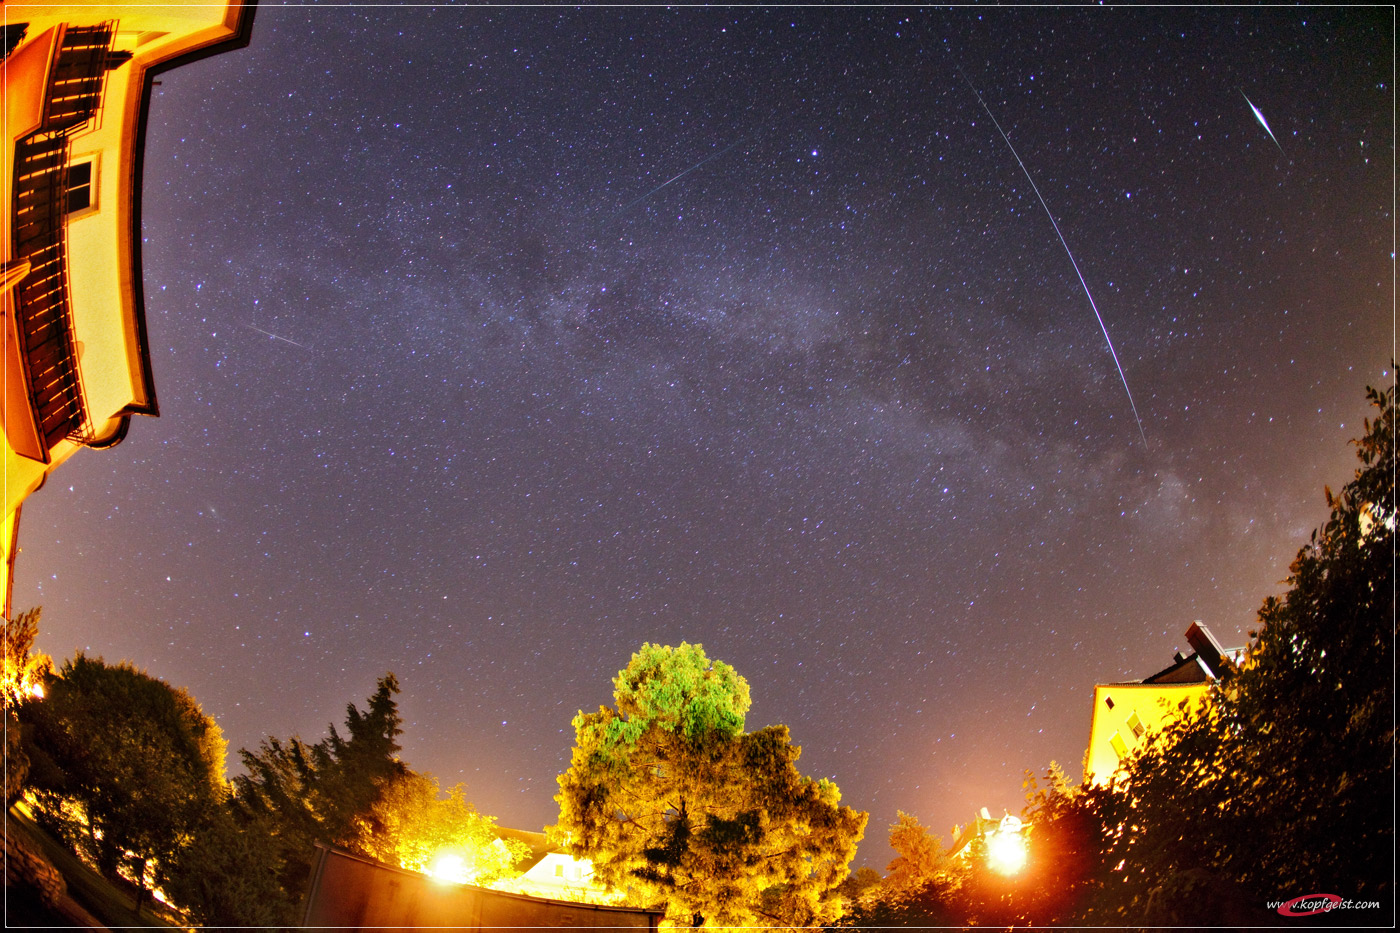 http://spaceweather.com/meteors/perseids/images2010/14aug10d/Jens-Hackmann2.jpg